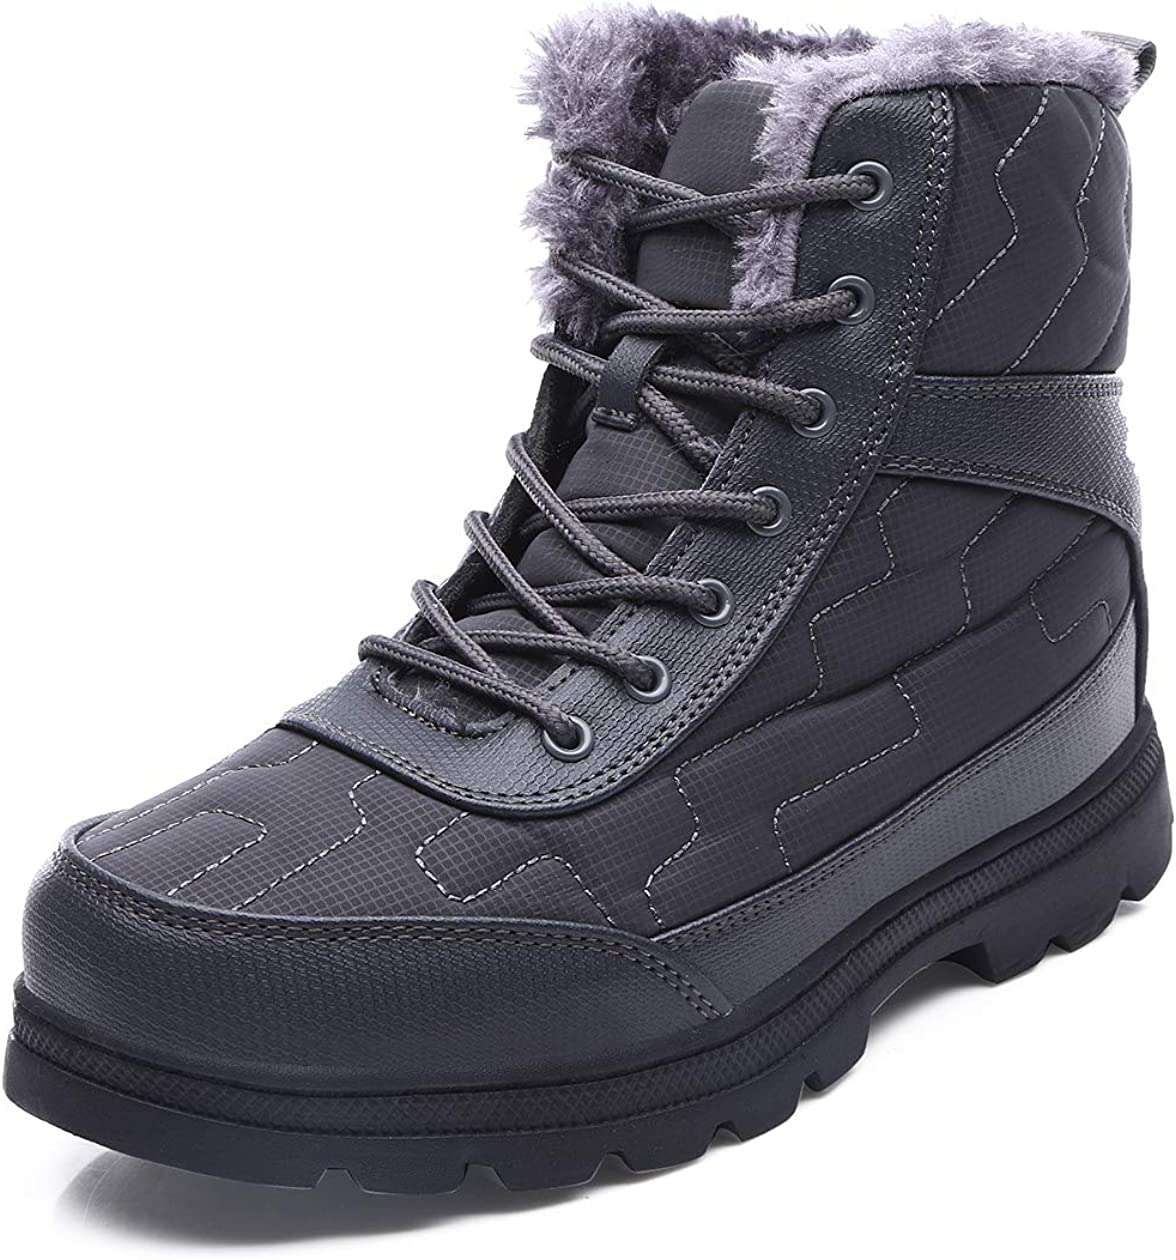 EXEBLUE Winter Snow Direct stock discount Boots Water-resistant Booties Max 54% OFF for M Mid Calf